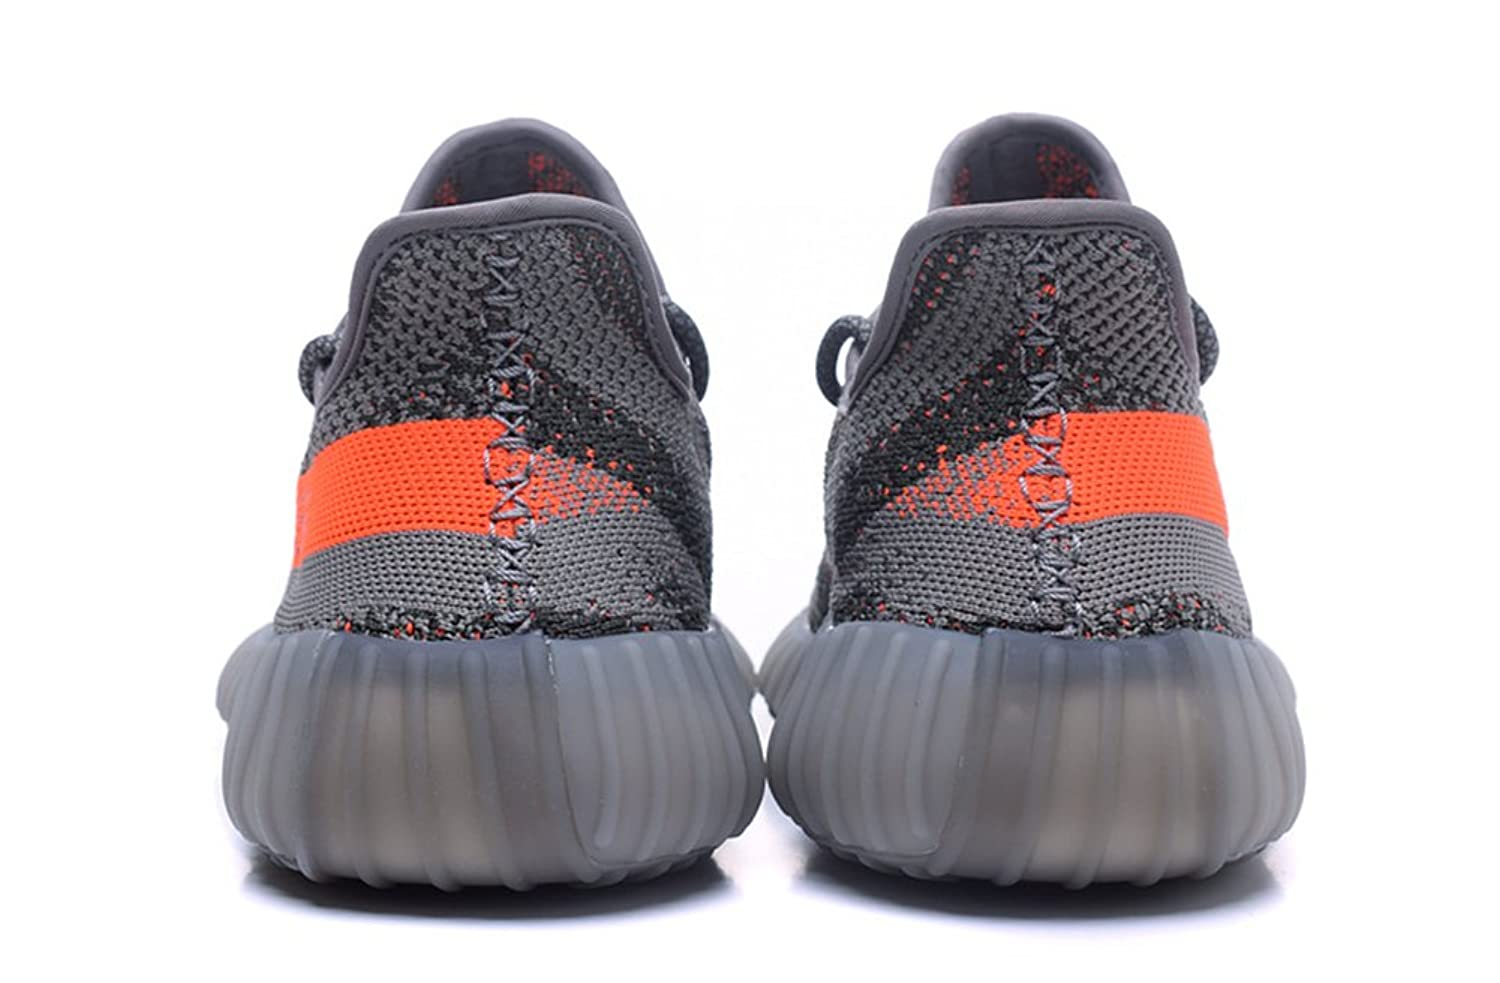 Will People Boycott The Adidas Yeezy Boost 350 V2 CP9652 Black Red